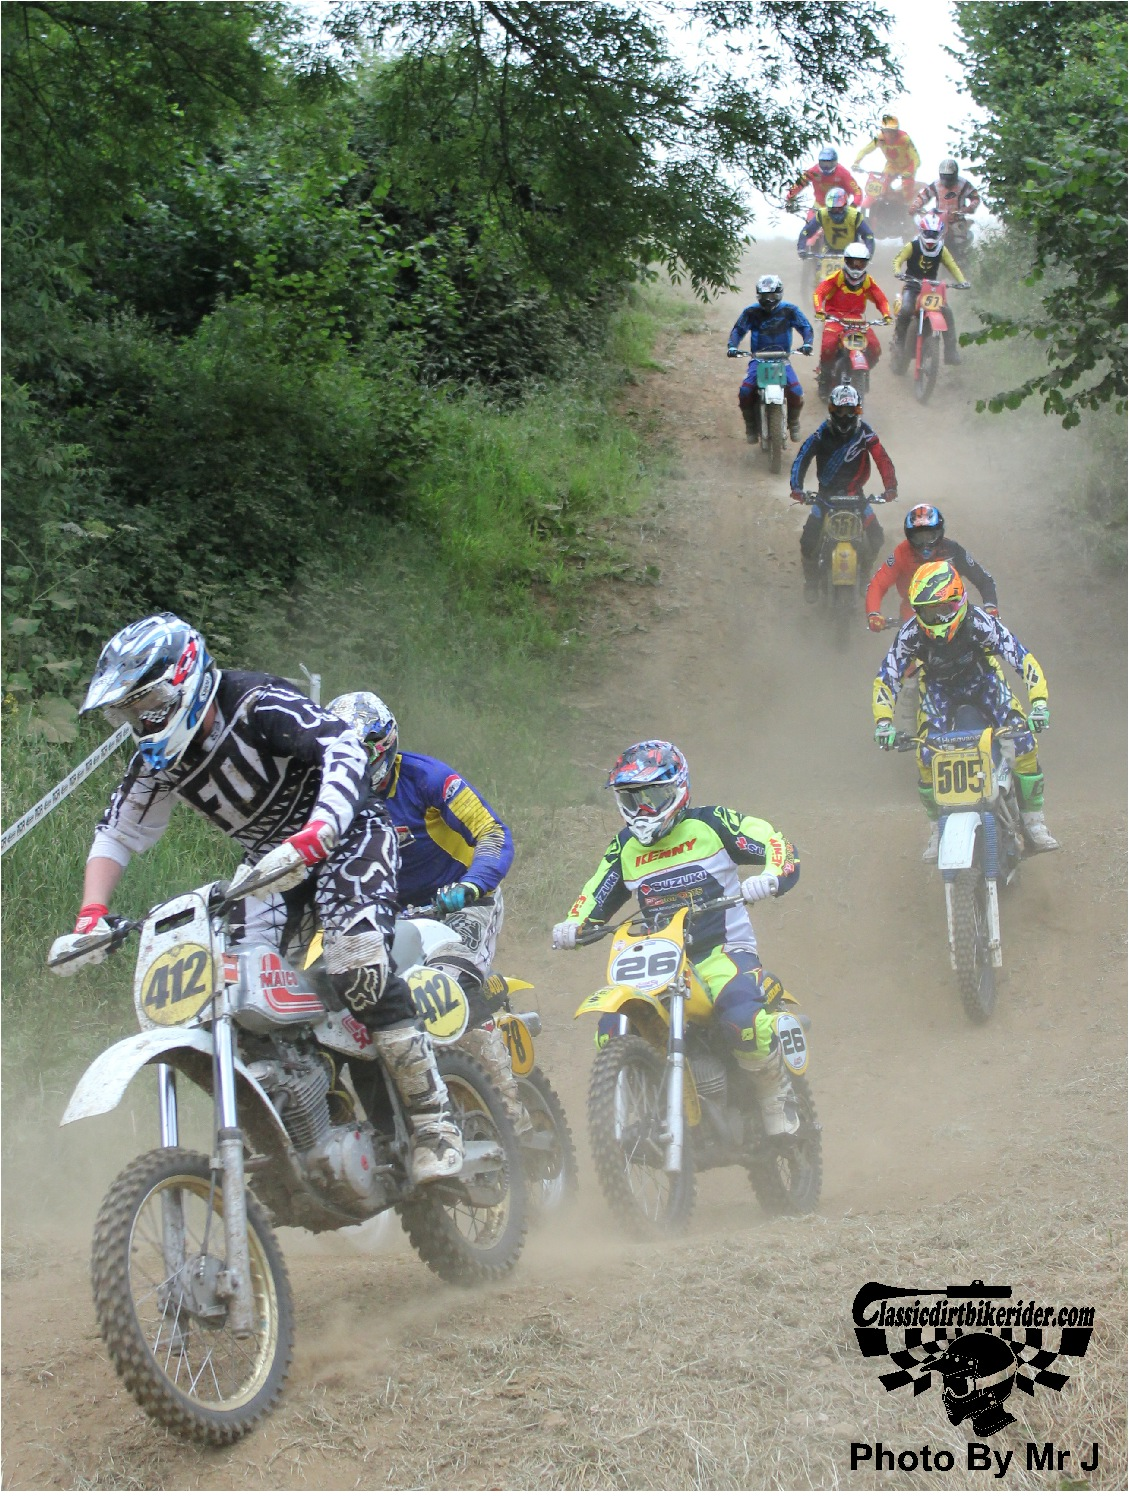 king of the castle 2015 photos Farleigh Castle twinshock motocross classicdirtbikerider.com 57